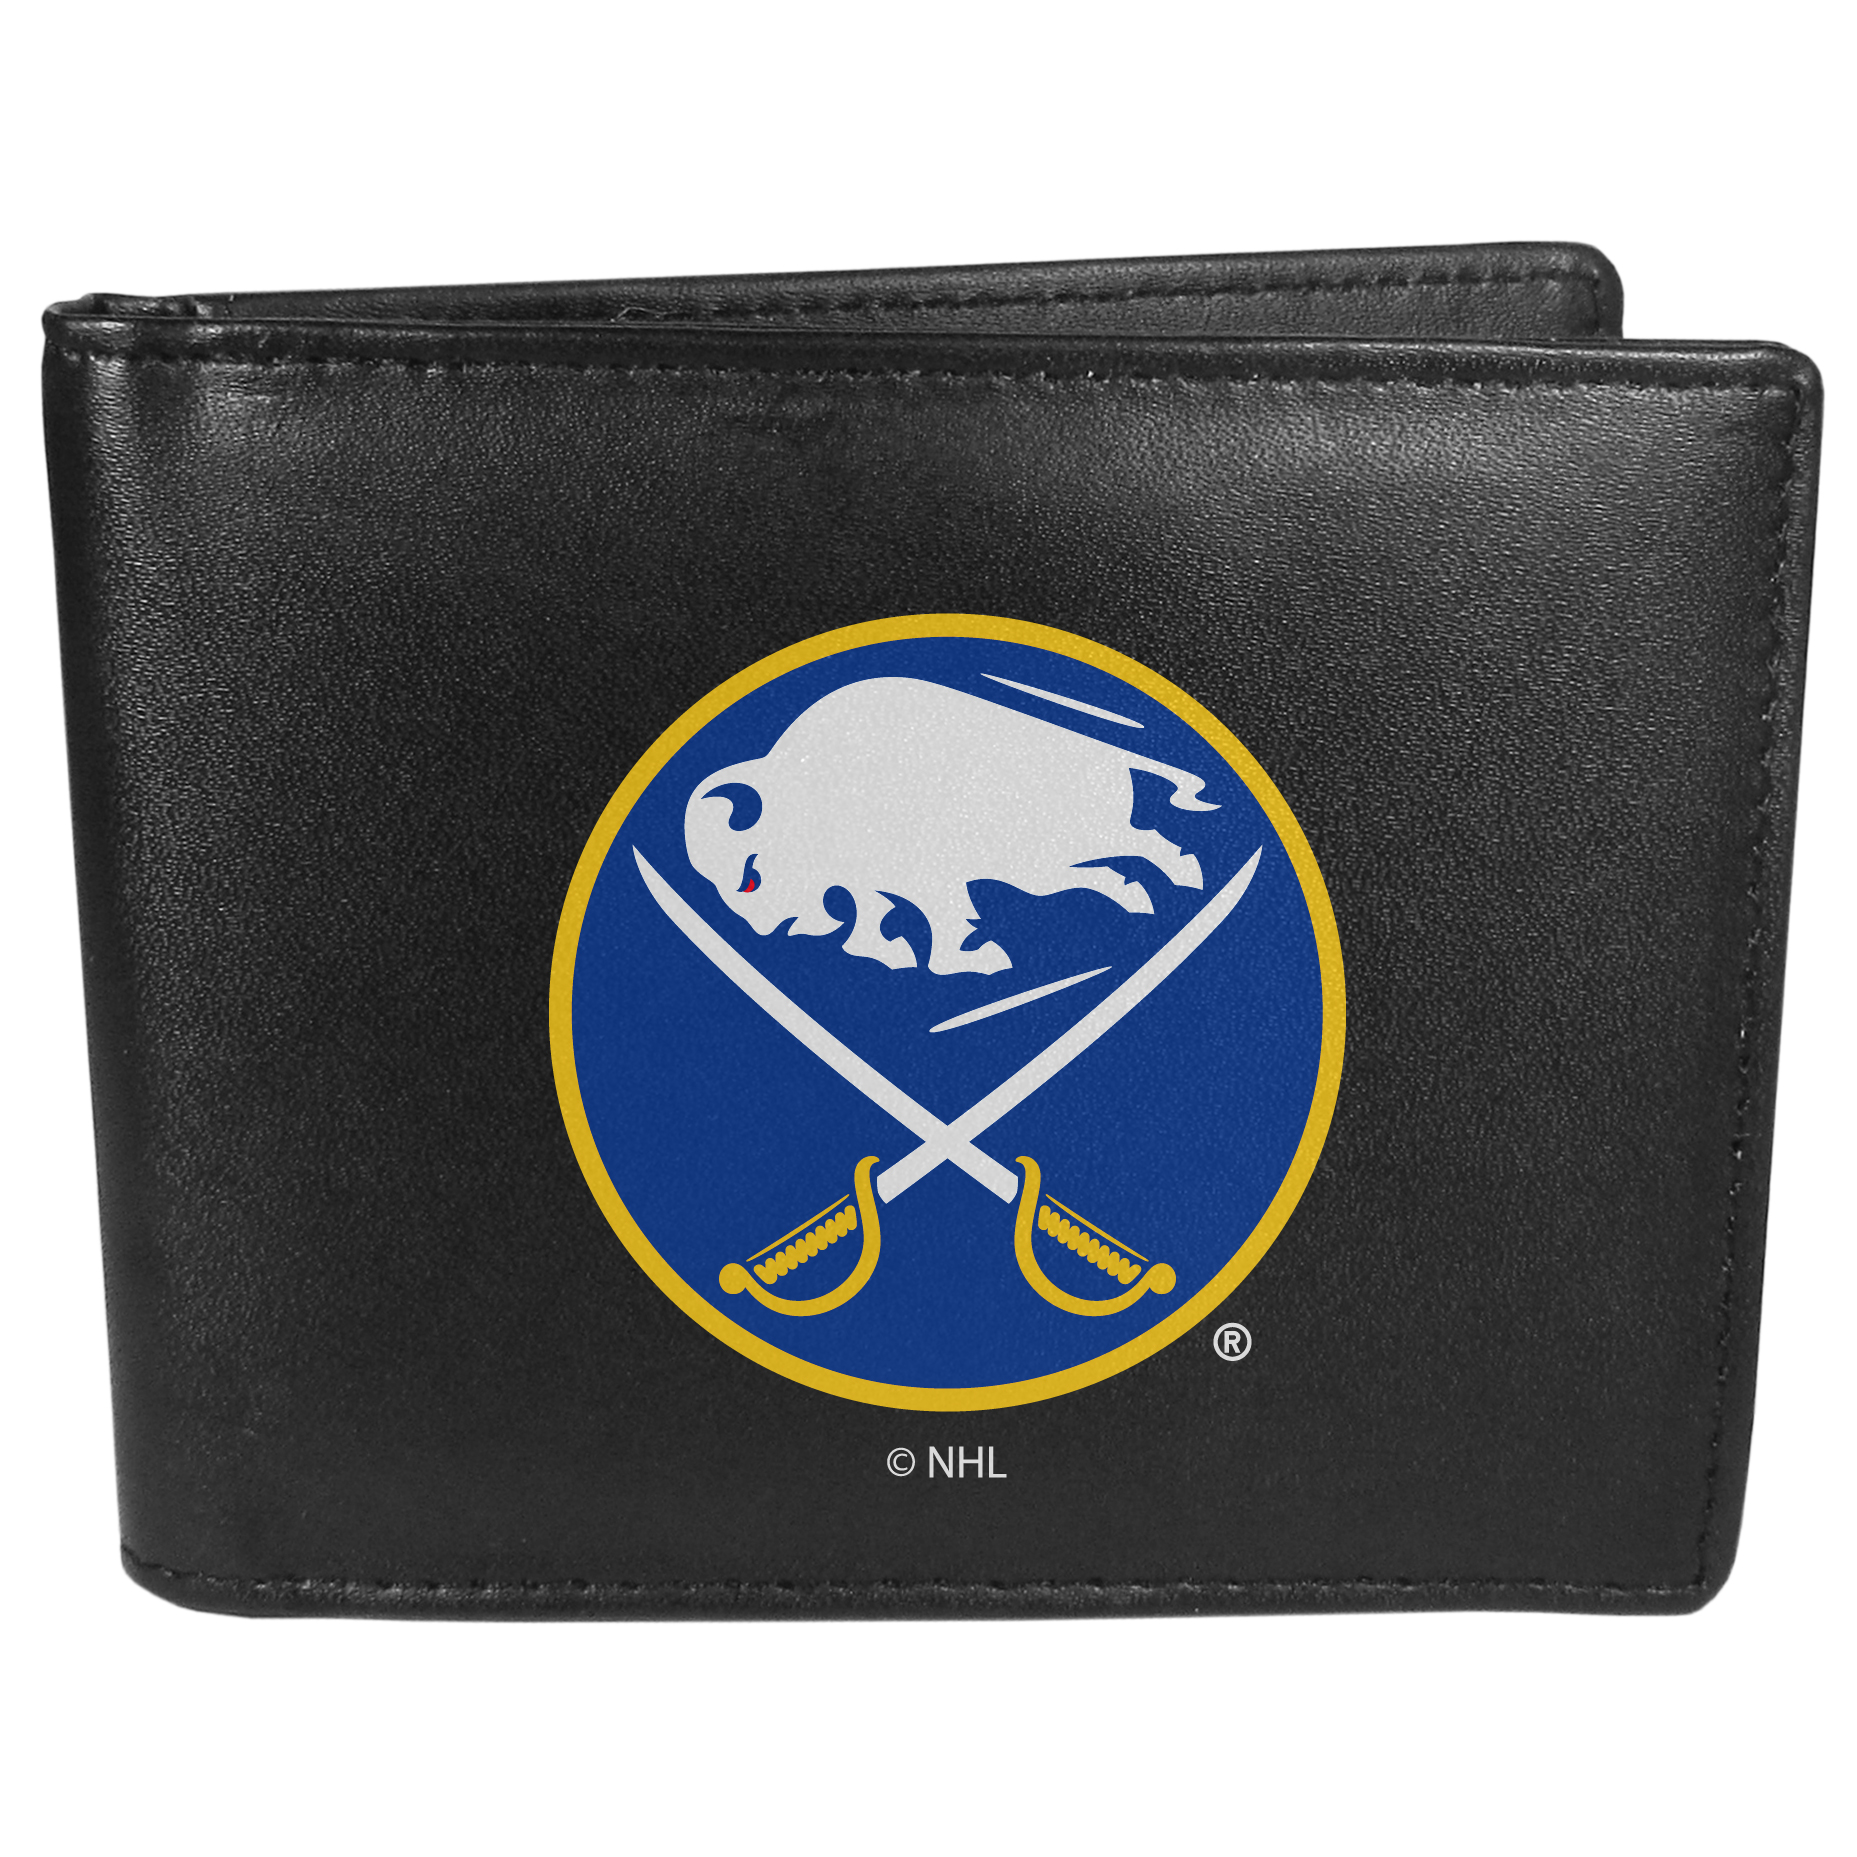 Buffalo Sabres® Leather Bi-fold Wallet, Large Logo - Our classic fine leather bi-fold wallet is meticulously crafted with genuine leather that will age beautifully so you will have a quality wallet for years to come. The wallet opens to a large, billfold pocket and numerous credit card slots and has a convenient windowed ID slot. The front of the wallet features an extra large Buffalo Sabres® printed logo.